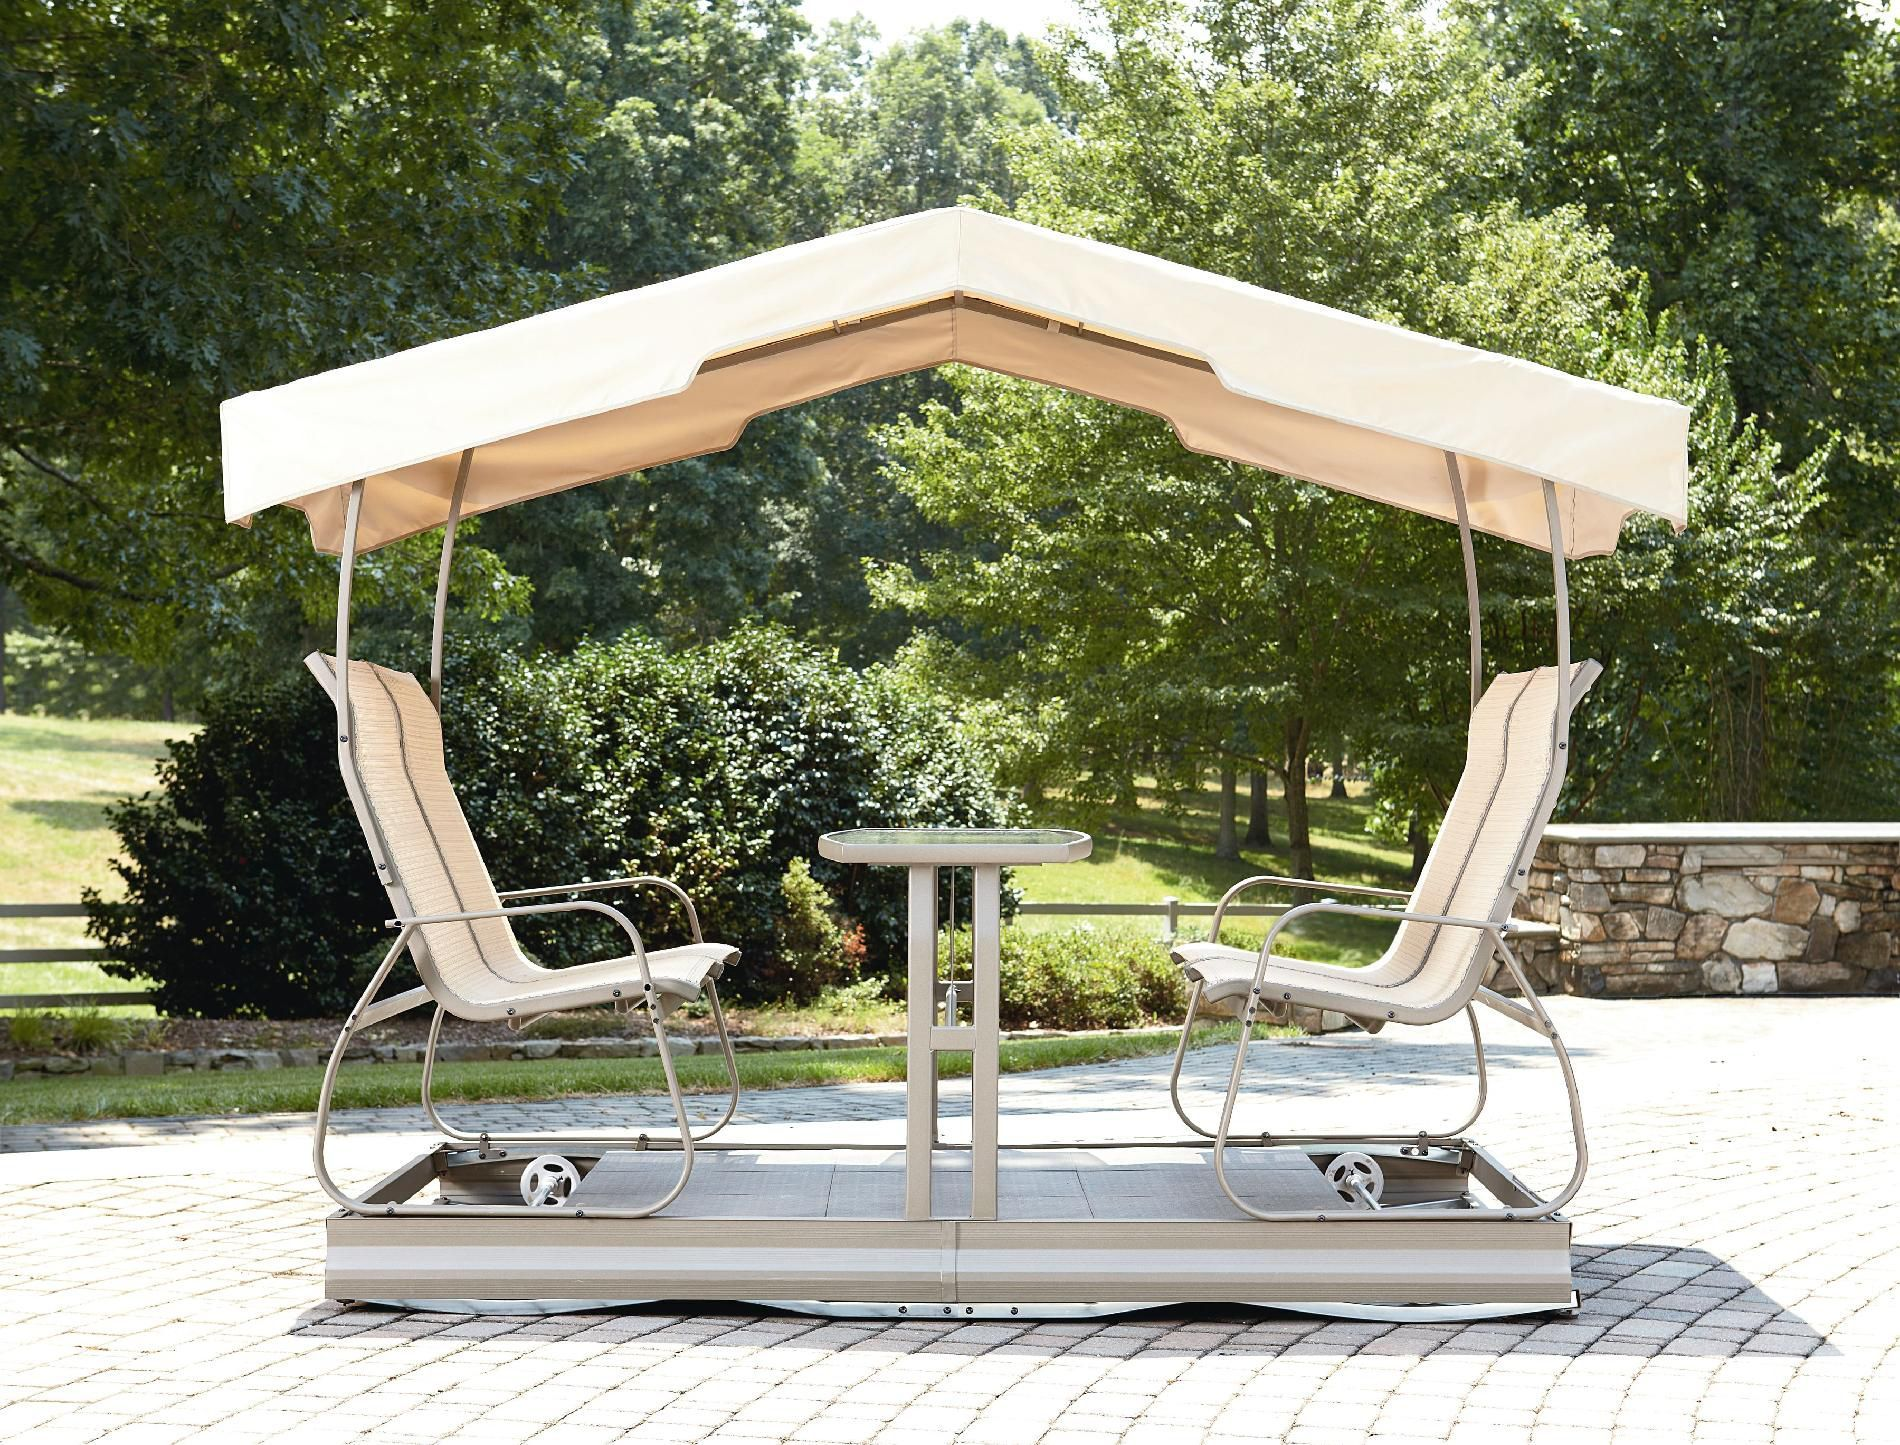 patio outdoor patio glider swing with canopy beige polyester canopy cover 4 person beige chair small center table face to face design sturdy steel frame